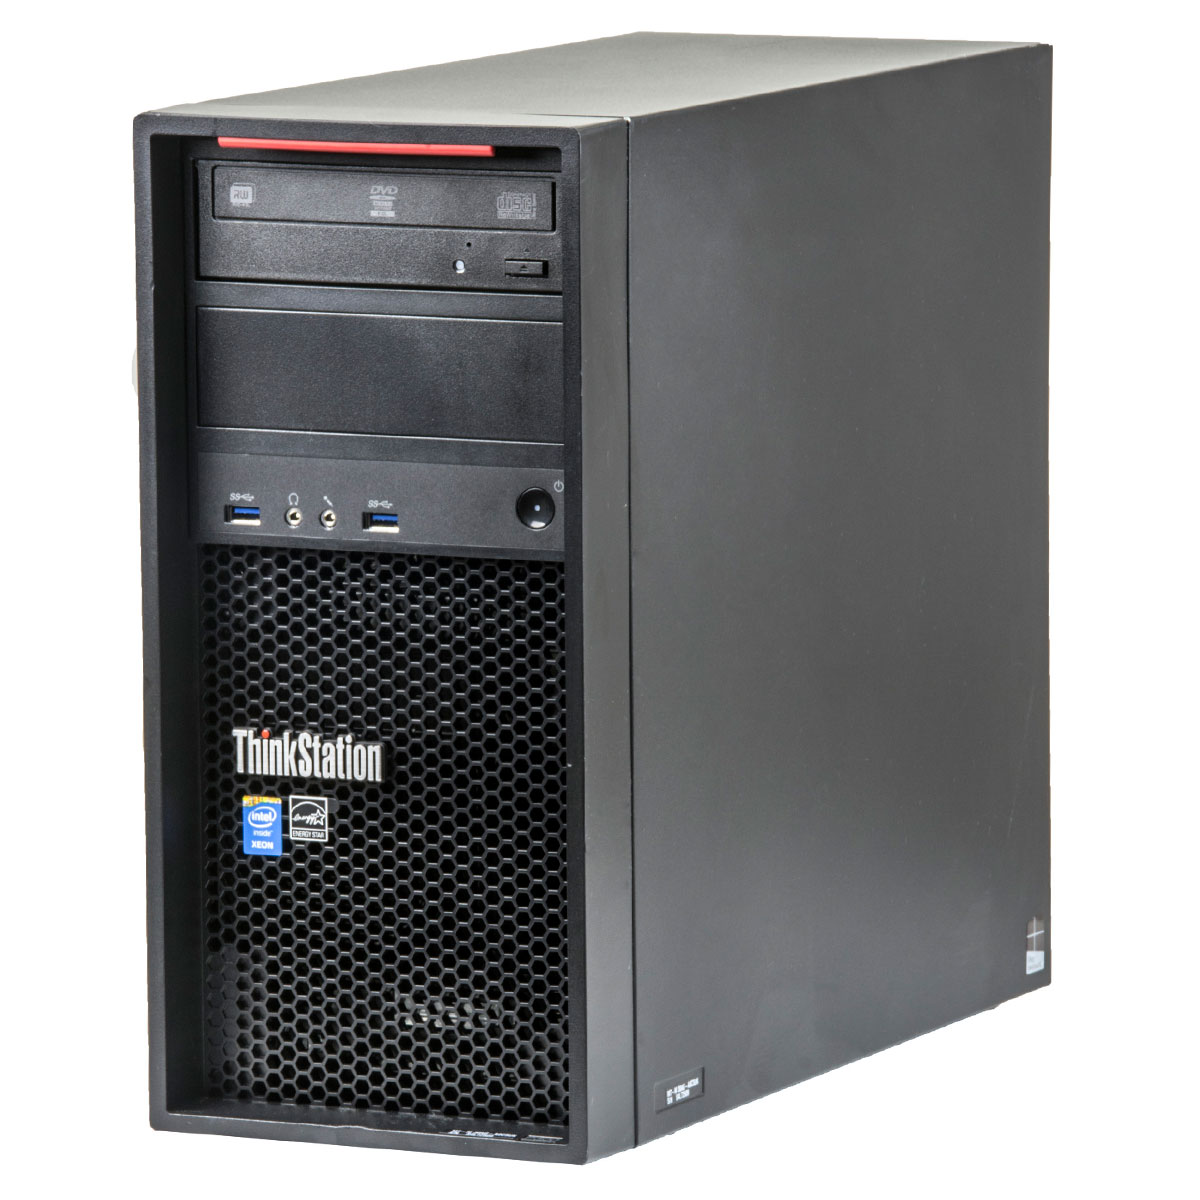 Lenovo ThinkStation P300 Intel Core i5-4590 3.30GHz  8GB DDR3  256GB SSD  DVD-RW  Tower  Windows 10 Pro MAR  workstation refurbished